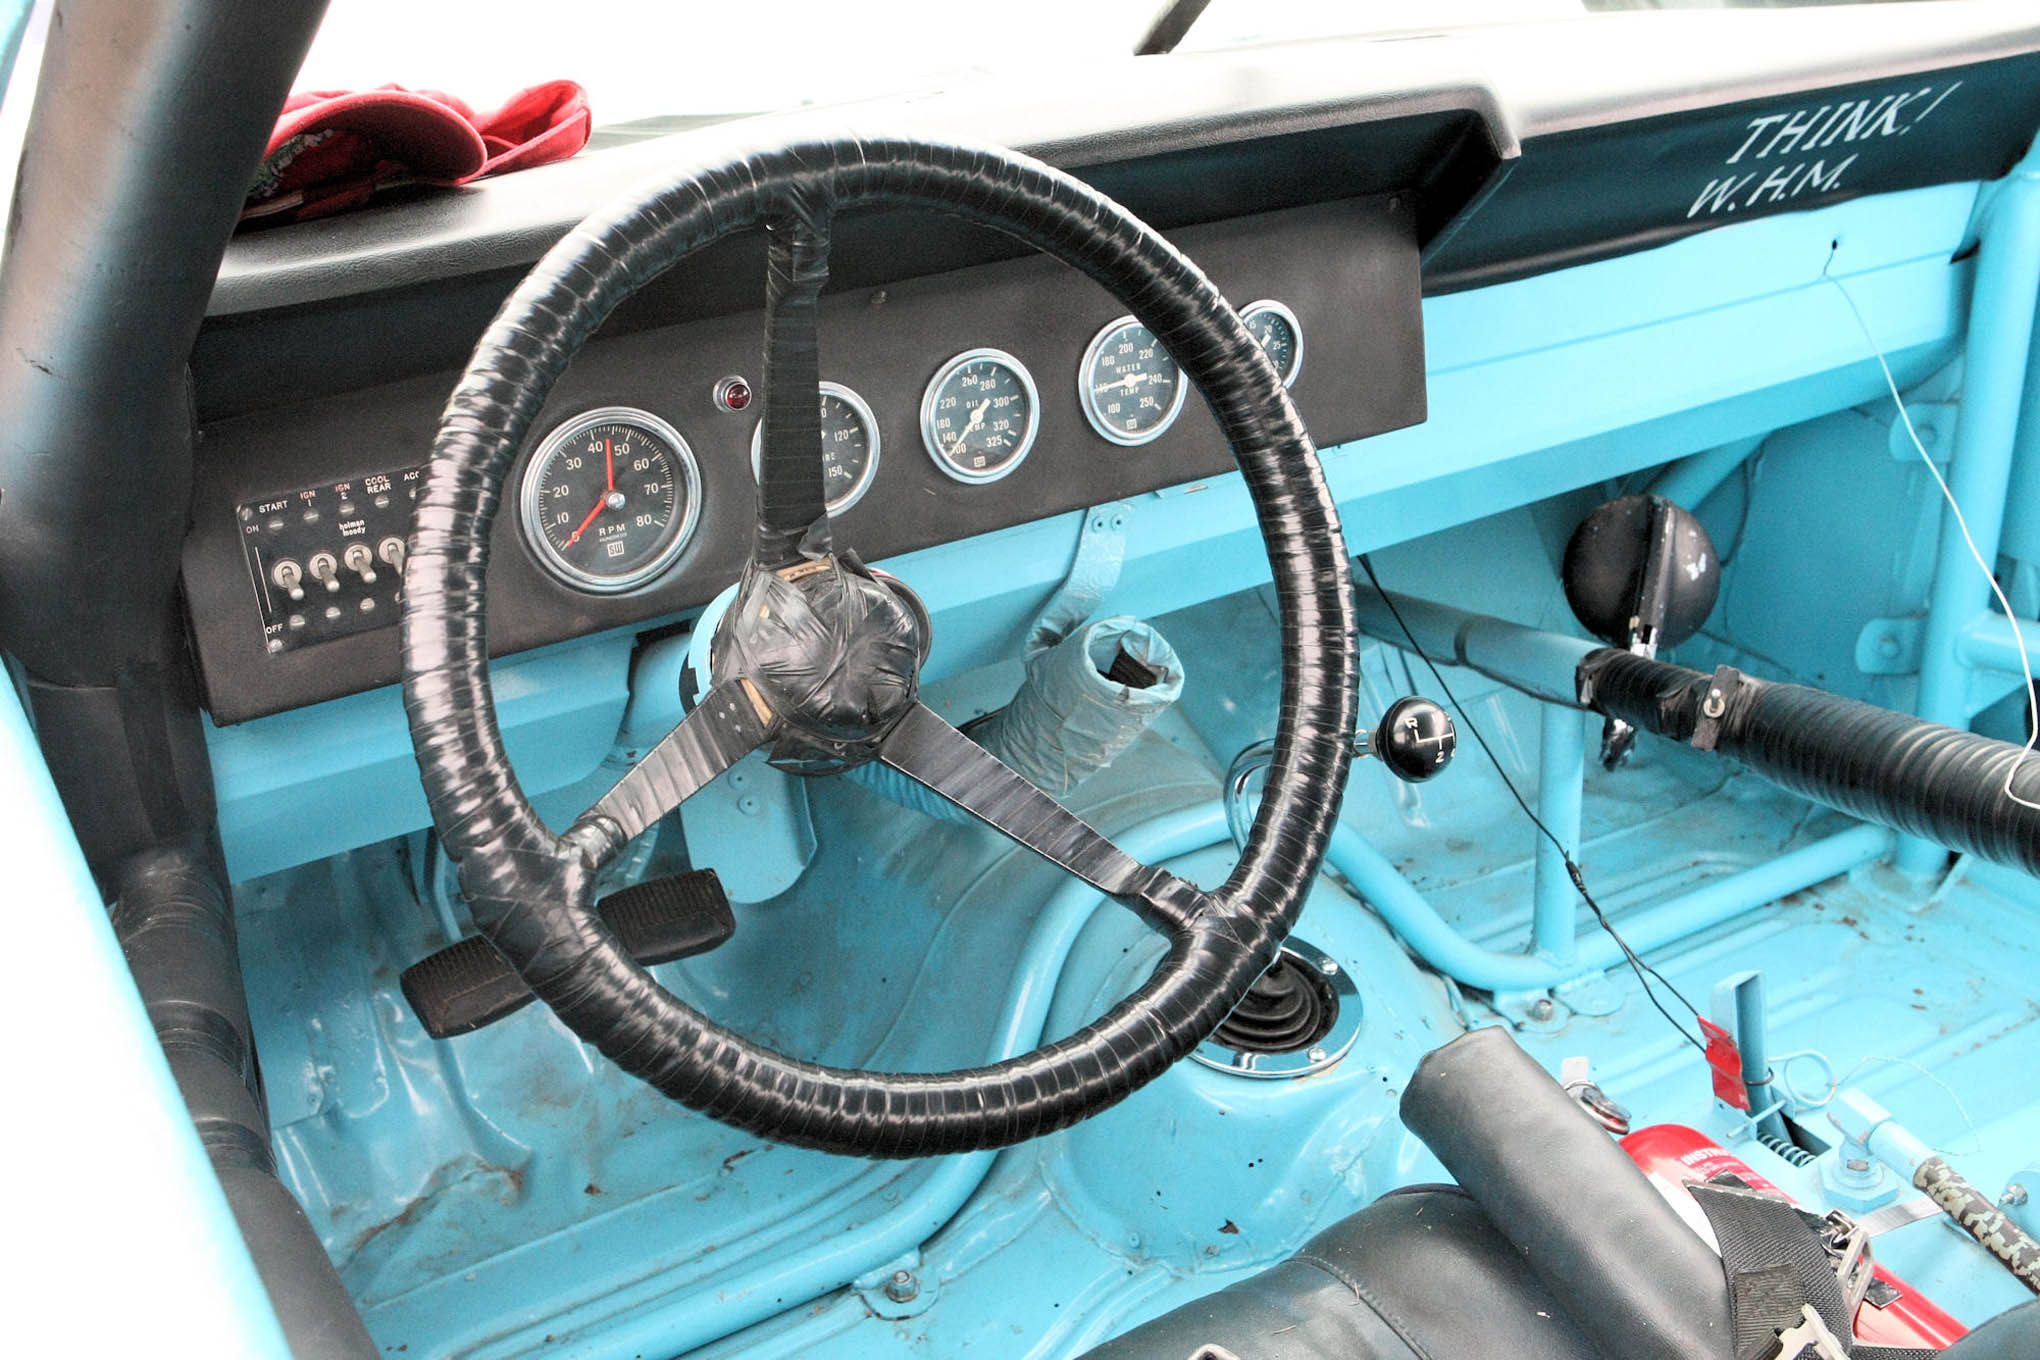 The driving compartment of a pretty simple 1960's era Stock Car. Notice the steering wheel and roll bar padding.